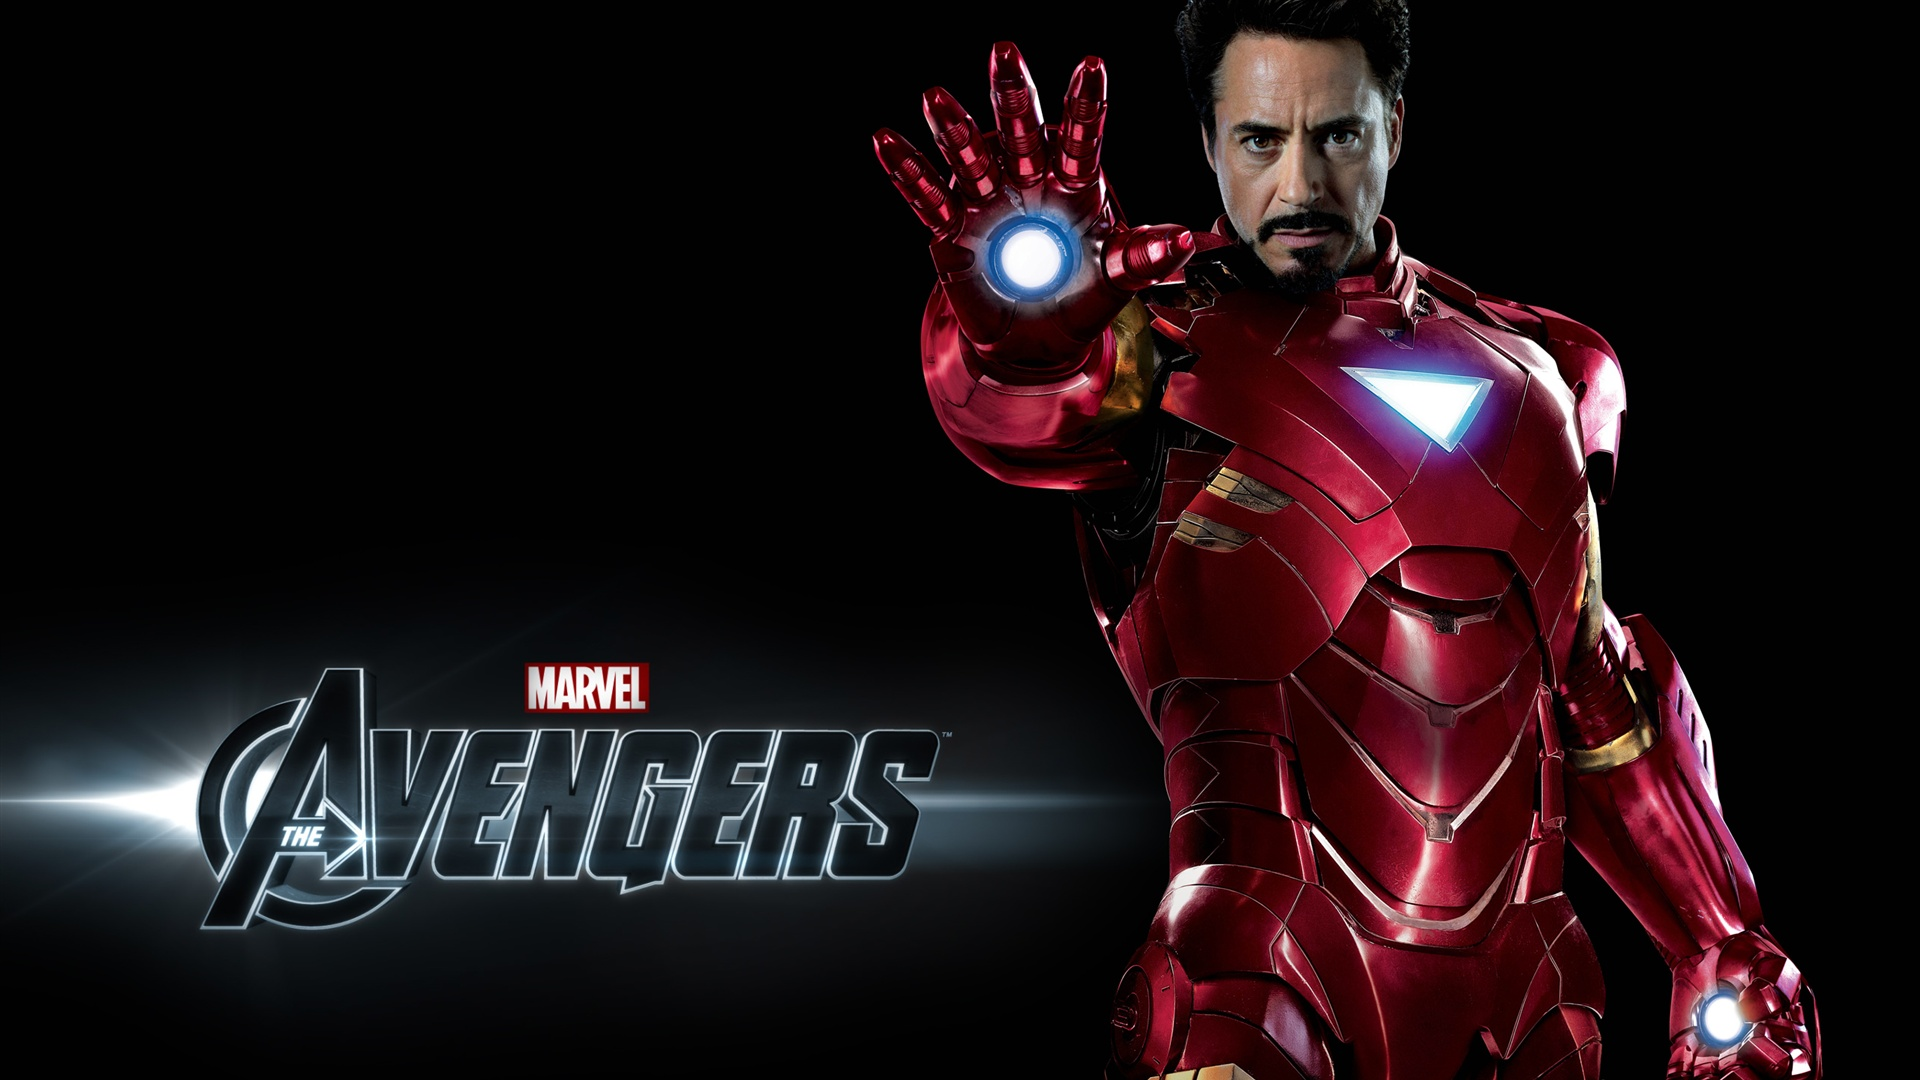 Wallpaper Iron Man In The Avengers 2560x1600 Hd Picture Image